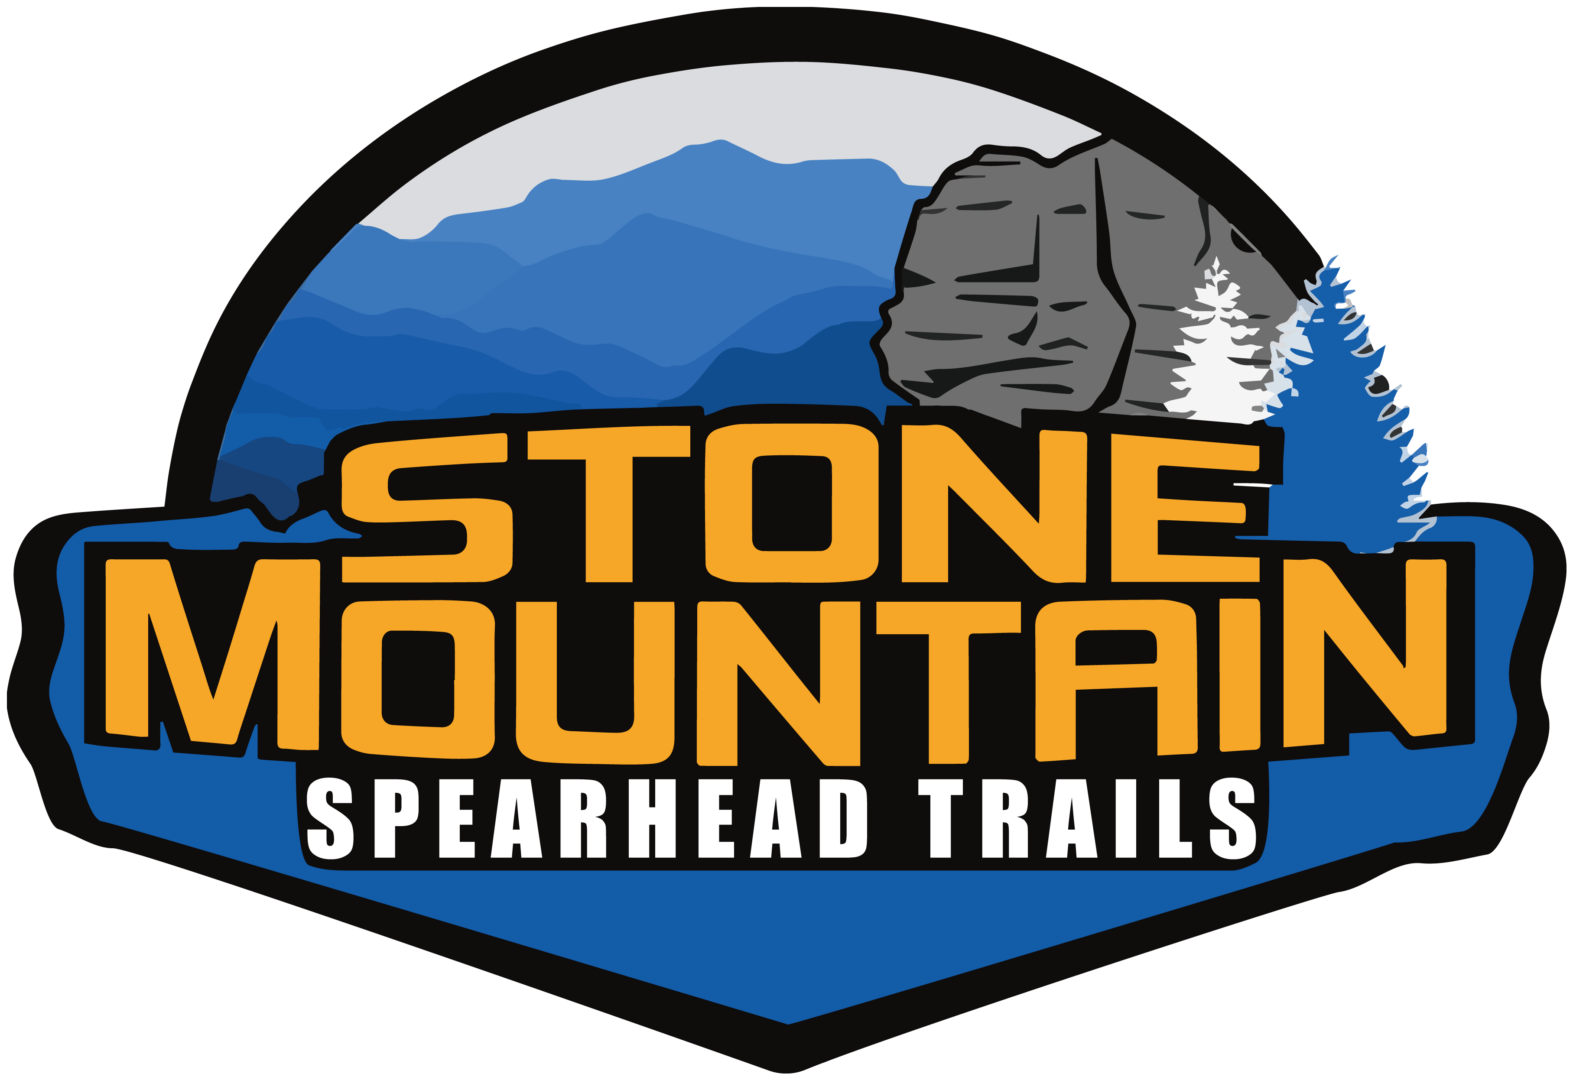 https://spearheadtrails.com/wp-content/uploads/2020/07/Stone-Mountain.png